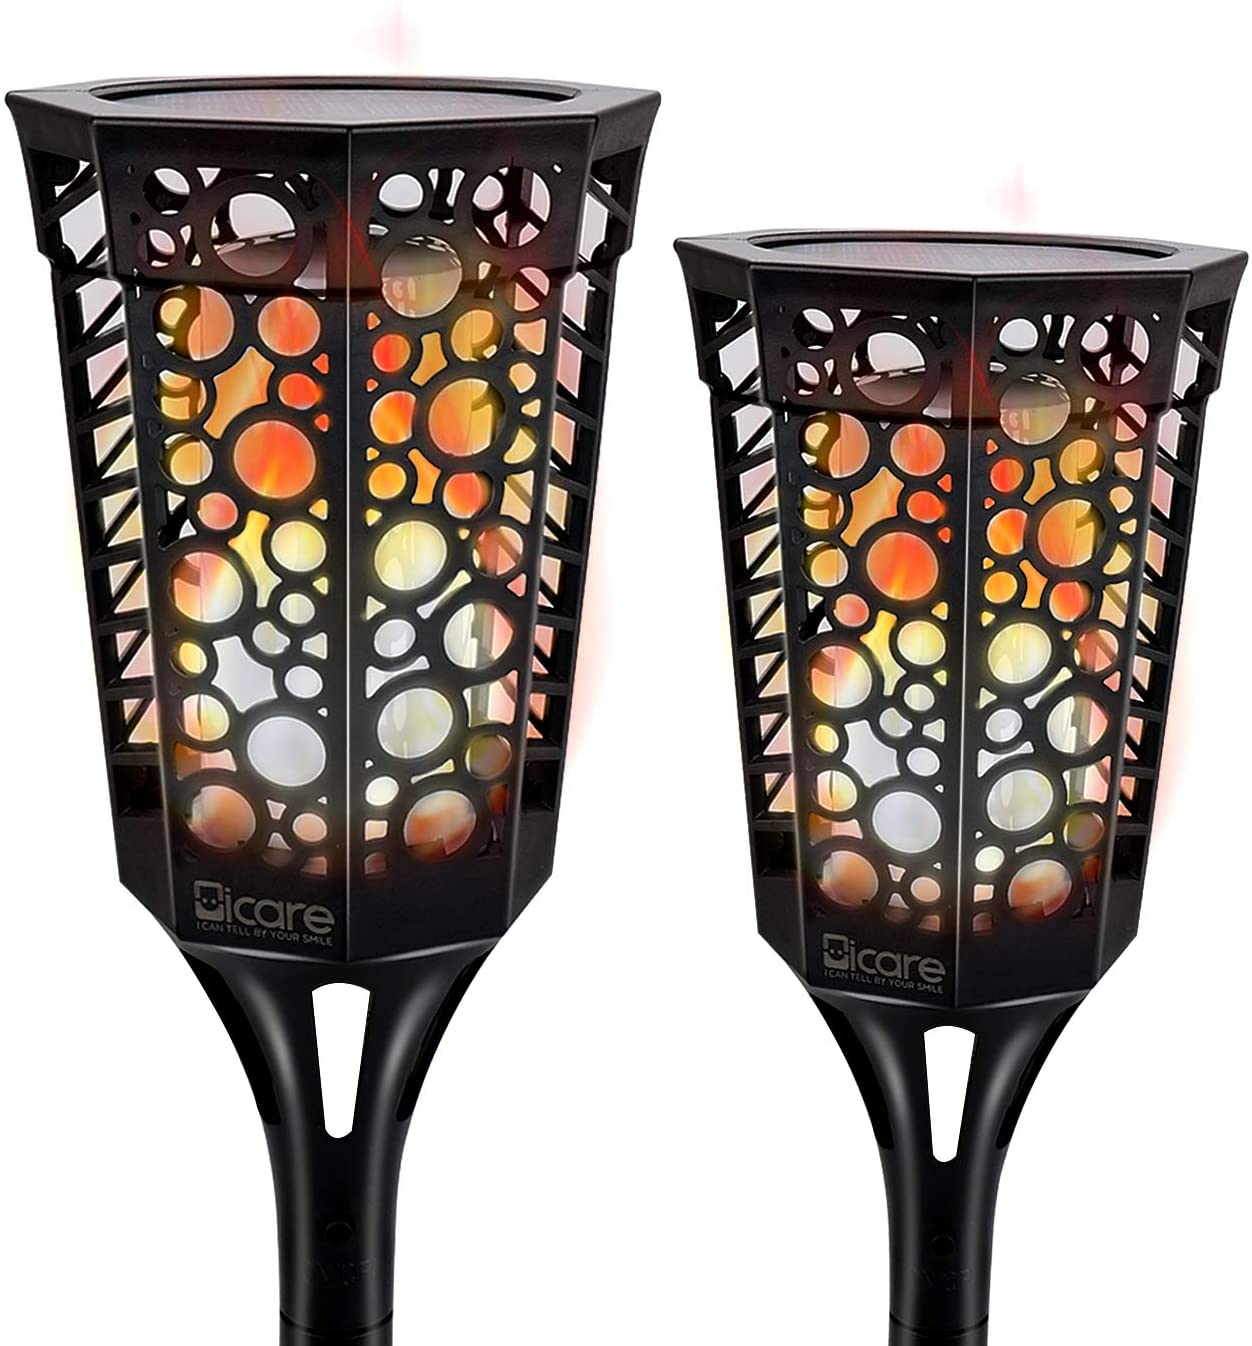 Solar Flame Torches, Led Solar Path Torch Light Dancing Flame, Flickering Flame Solar Torch with 99 LEDs Tiki Torches Lights IP65 Waterproof Outdoor Torch Light Auto On/Off by ICARE(2 Pack)